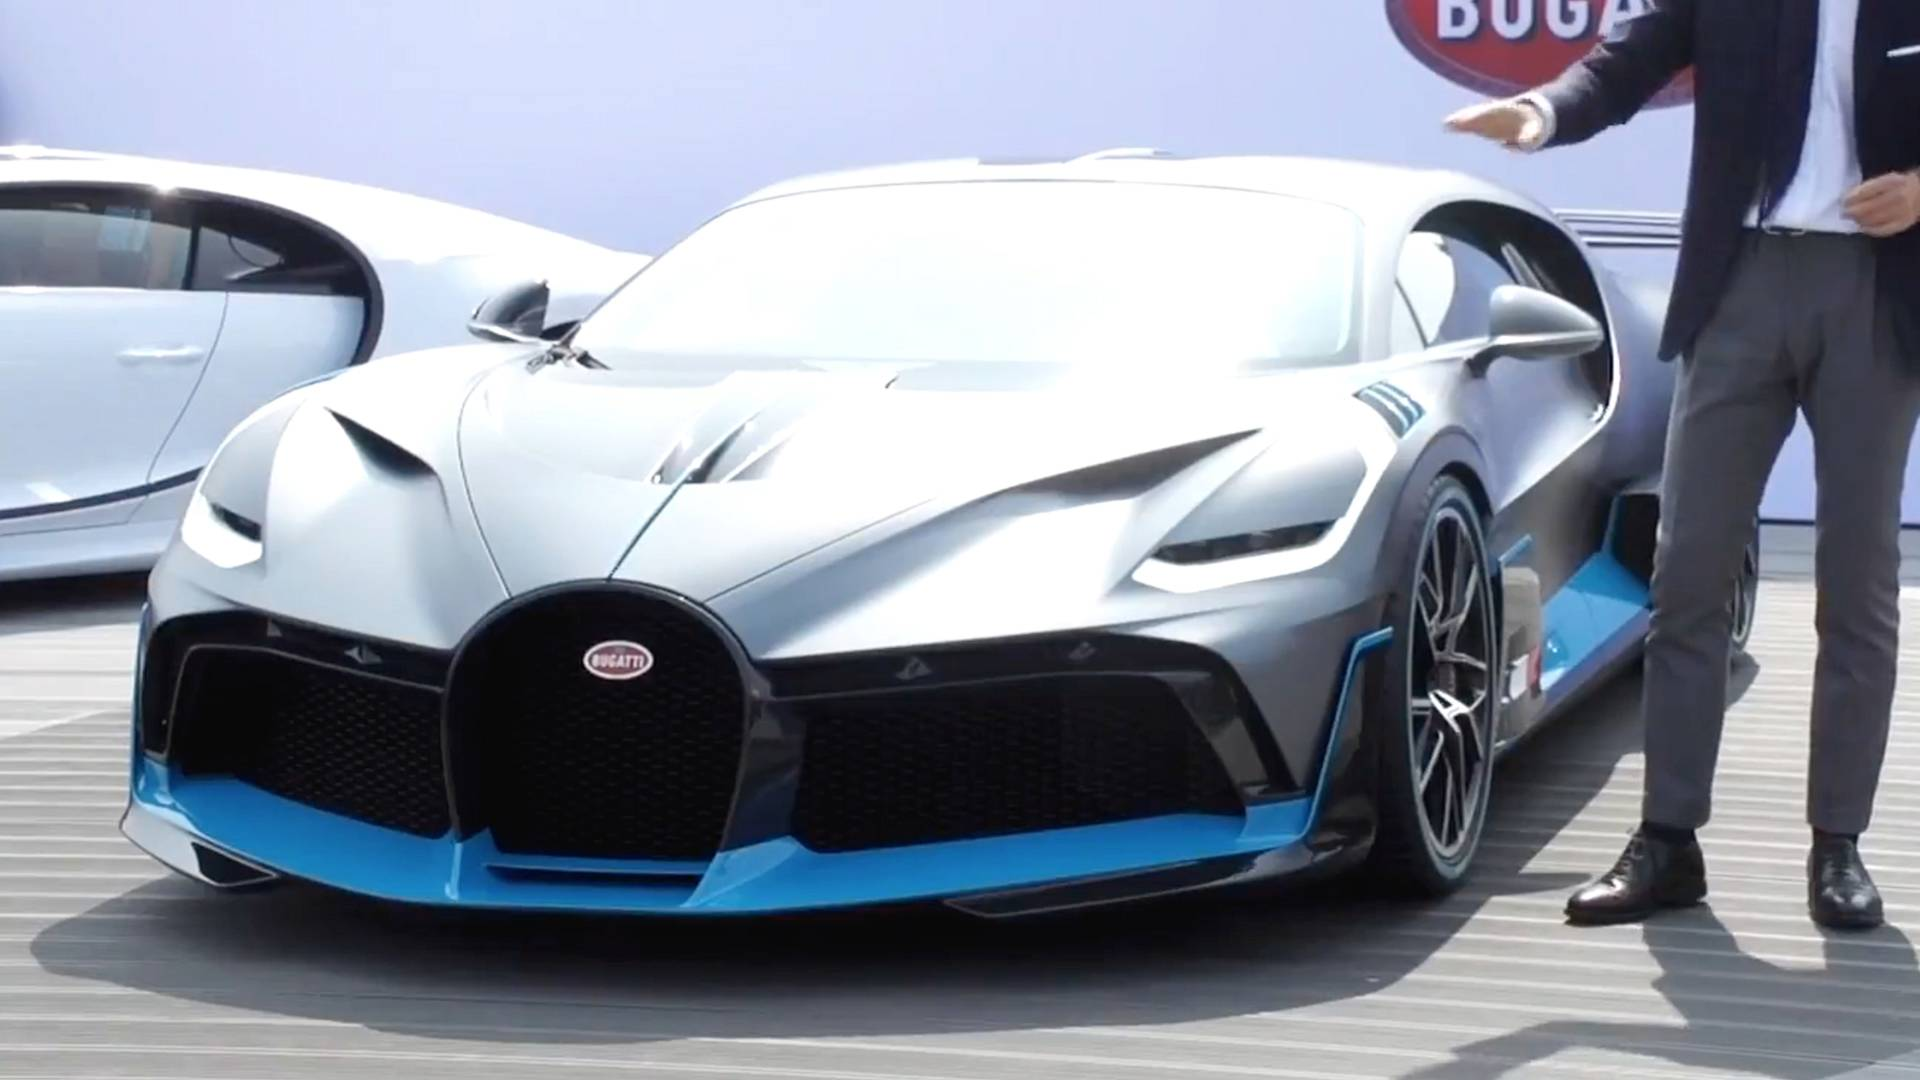 Junk Cars For Sale >> Bugatti Divo News and Reviews | Motor1.com